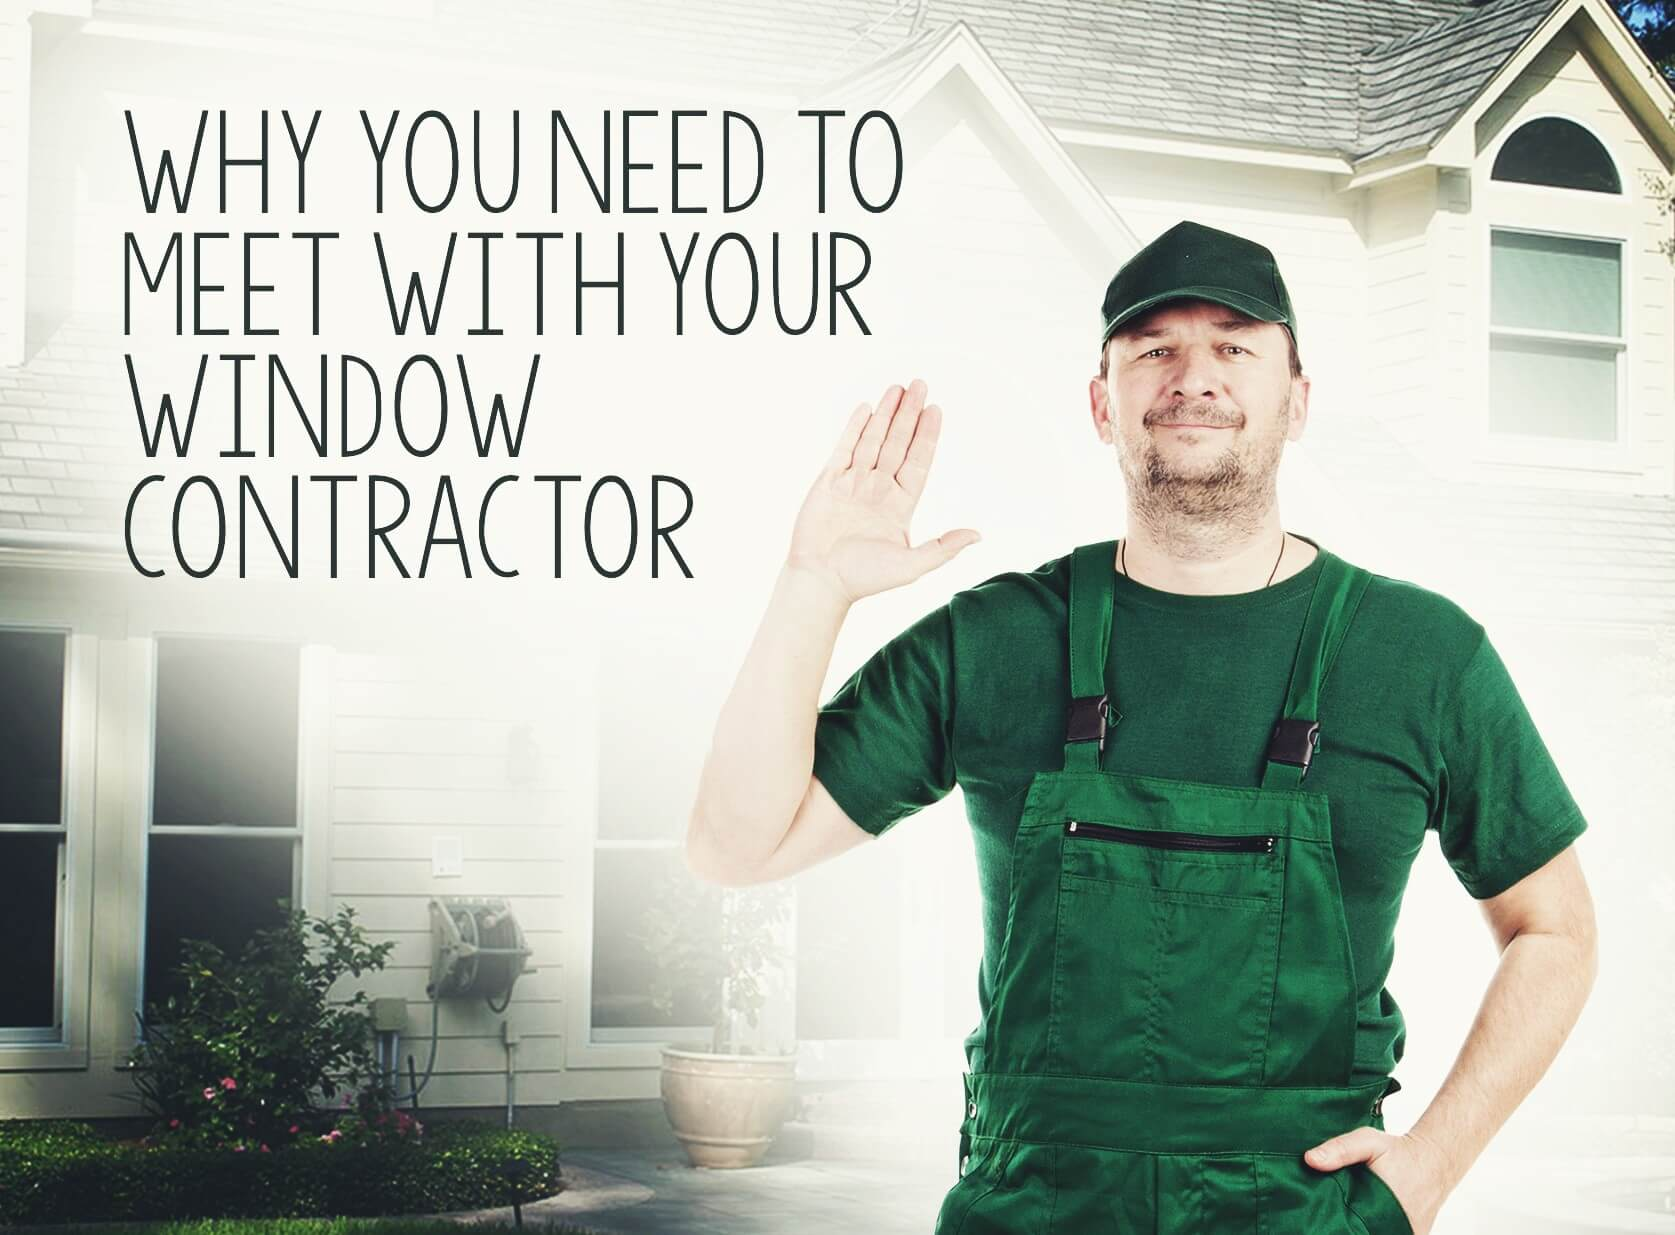 Why You Need To Meet With Your Window Contractor